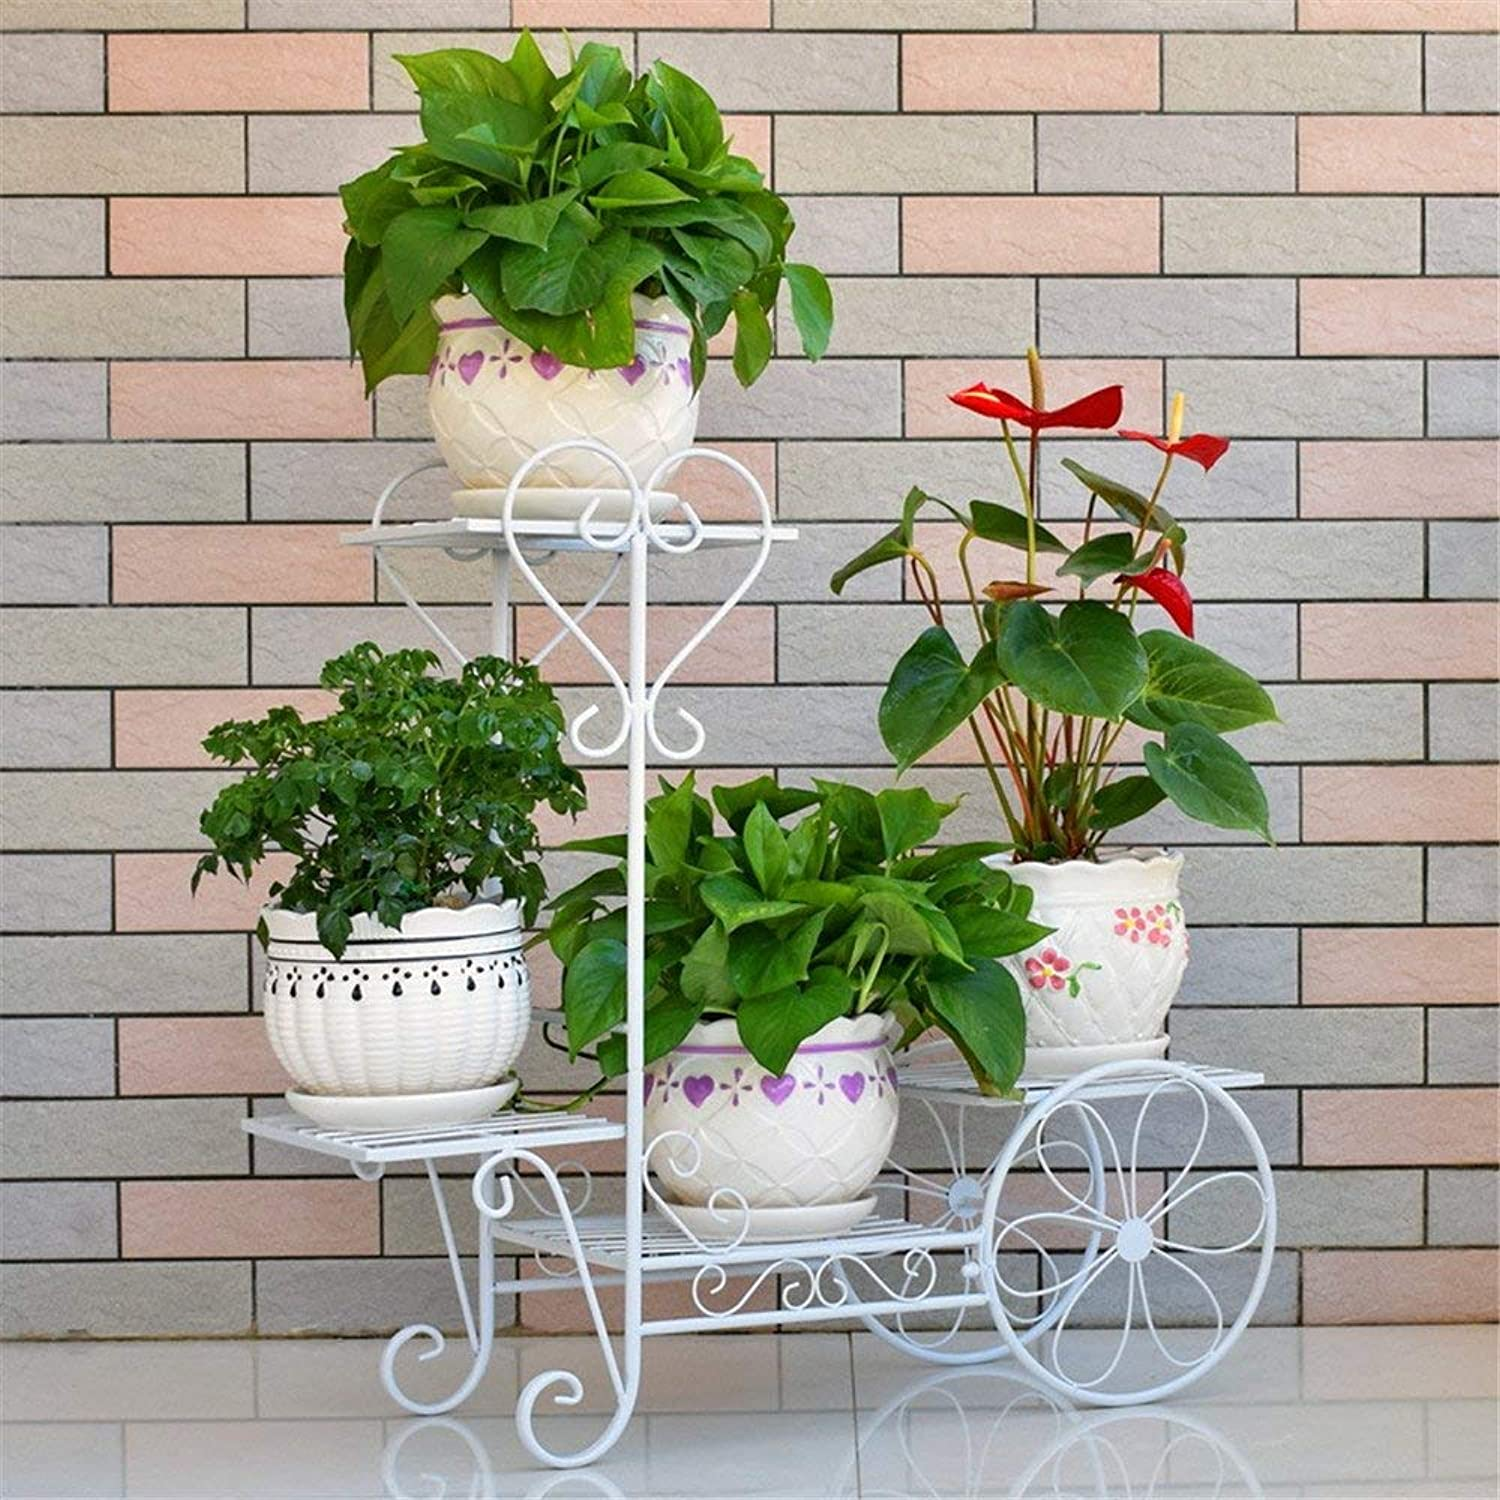 Gifts & Decor Plant Stand Shelf Iron Multilayer Floor Terrace Living Room, Multifunctional Flower Display Stands Wood Pot Shelf Storage Rack Outdoor Indoor Pots Holder Thanksgiving Christams Birthday